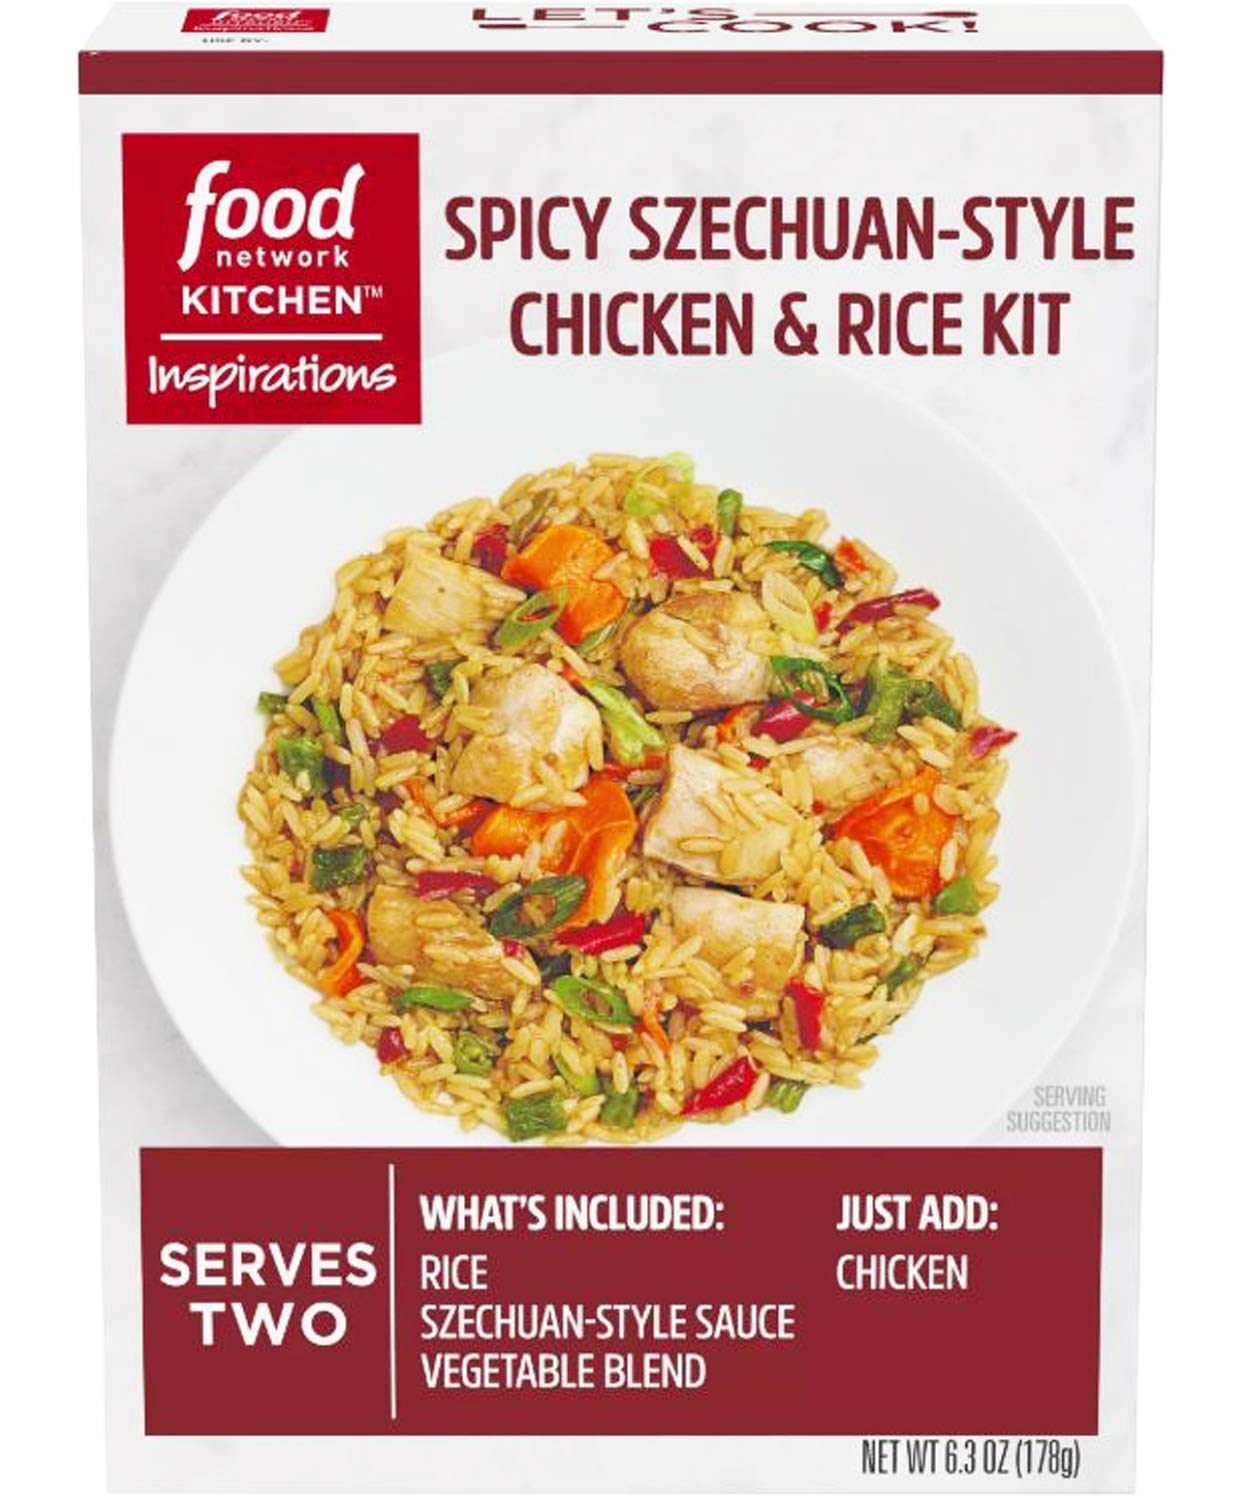 Food Network Kitchen Inspirations Spicy Szechuan Style Chicken & Rice Meal Kit! Includes Rice, Green Beans, Carrots, Red Peppers And Szechuan Sauce! Easy Homemade Chicken & Fried Rice Dinner Kit! (1)